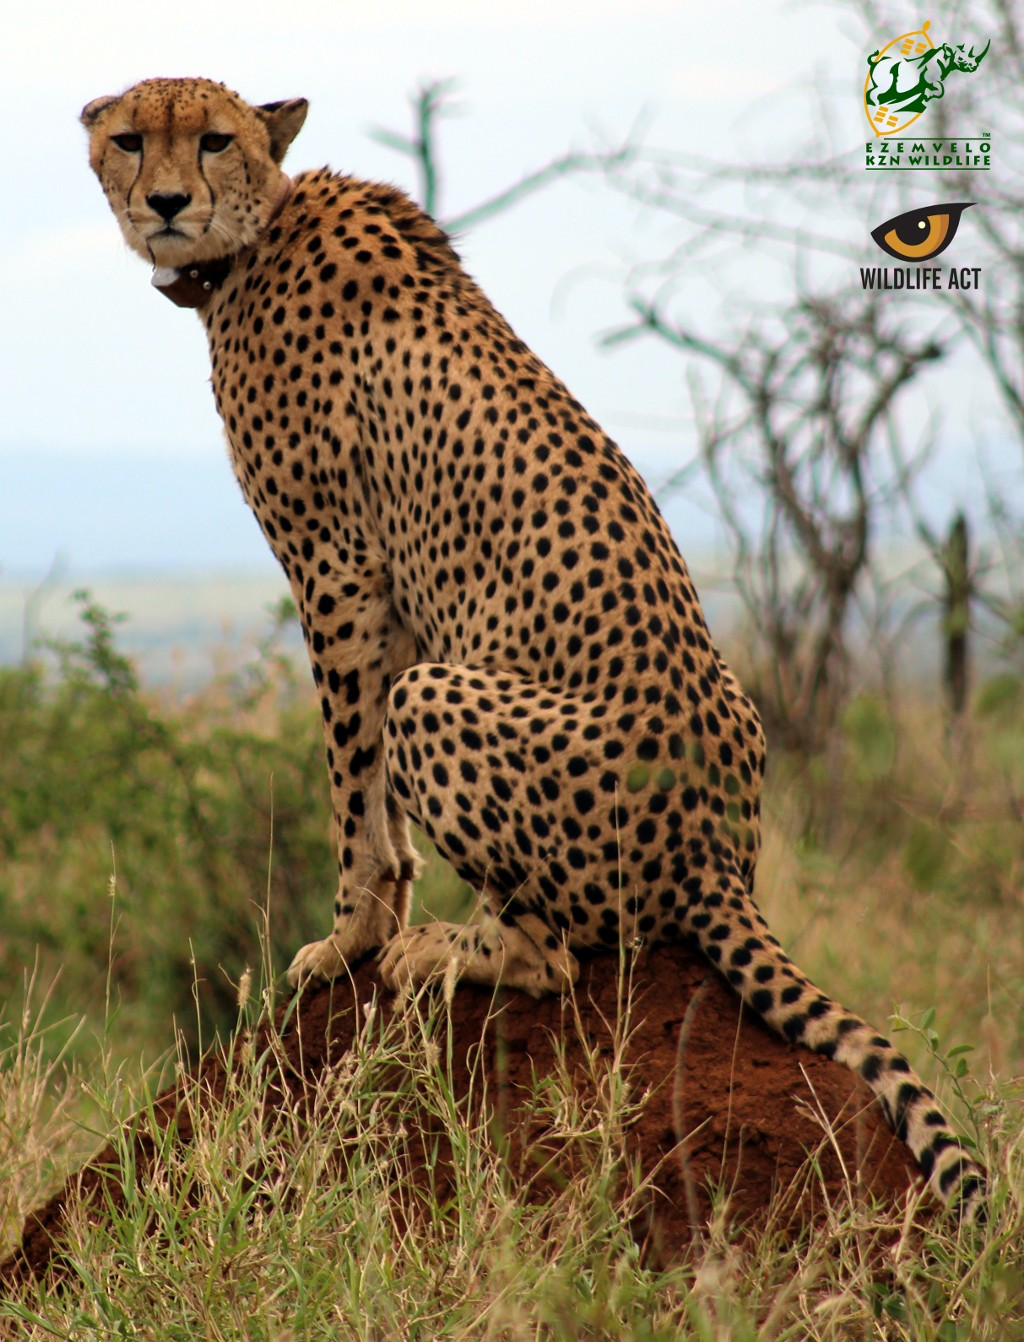 Cheetah tear marks on a male.